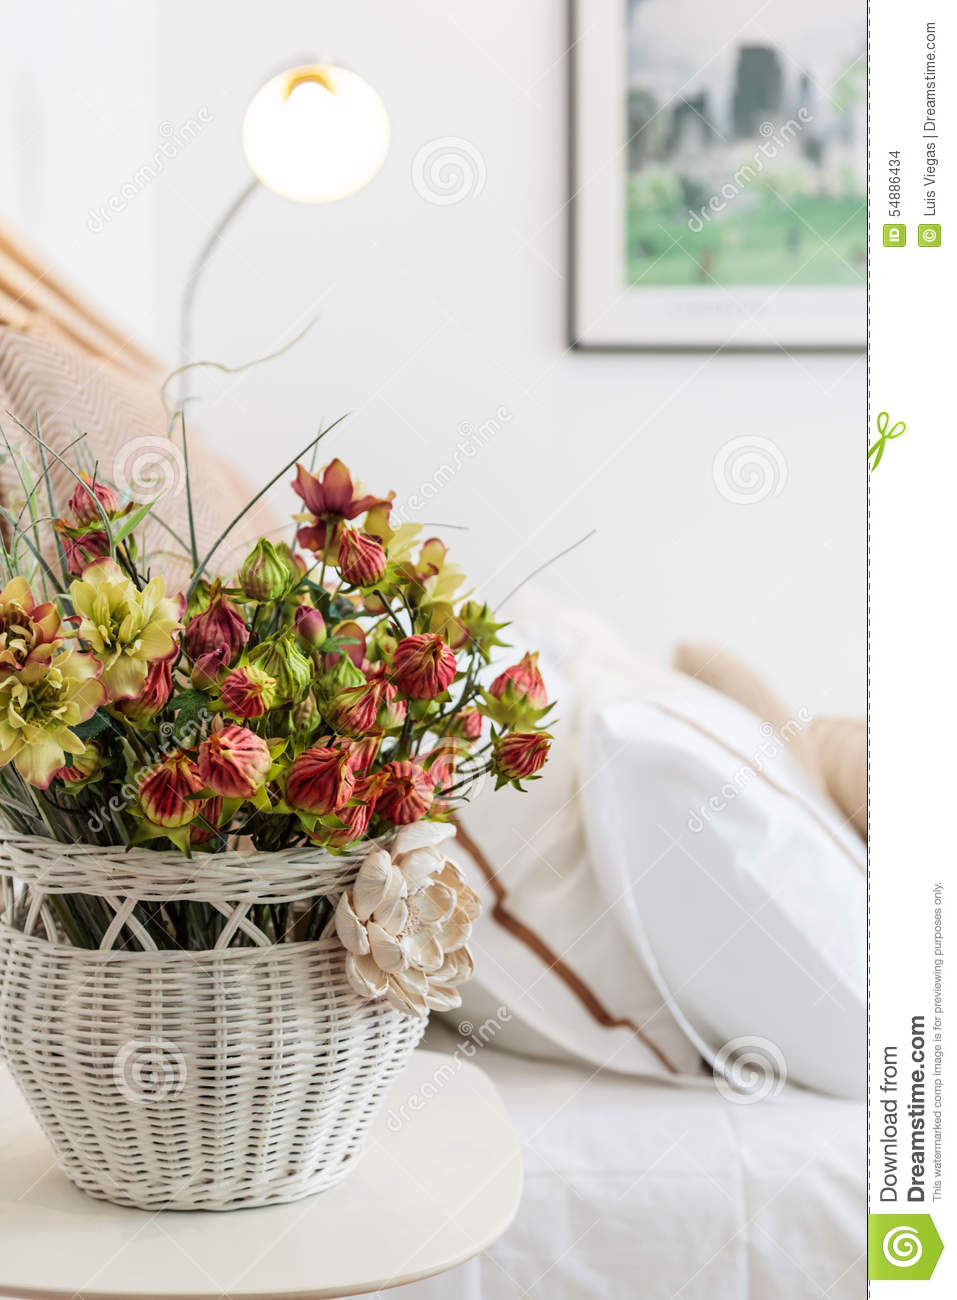 House Decoration Details White Basket With Flowers Stock Home Decorators Catalog Best Ideas of Home Decor and Design [homedecoratorscatalog.us]